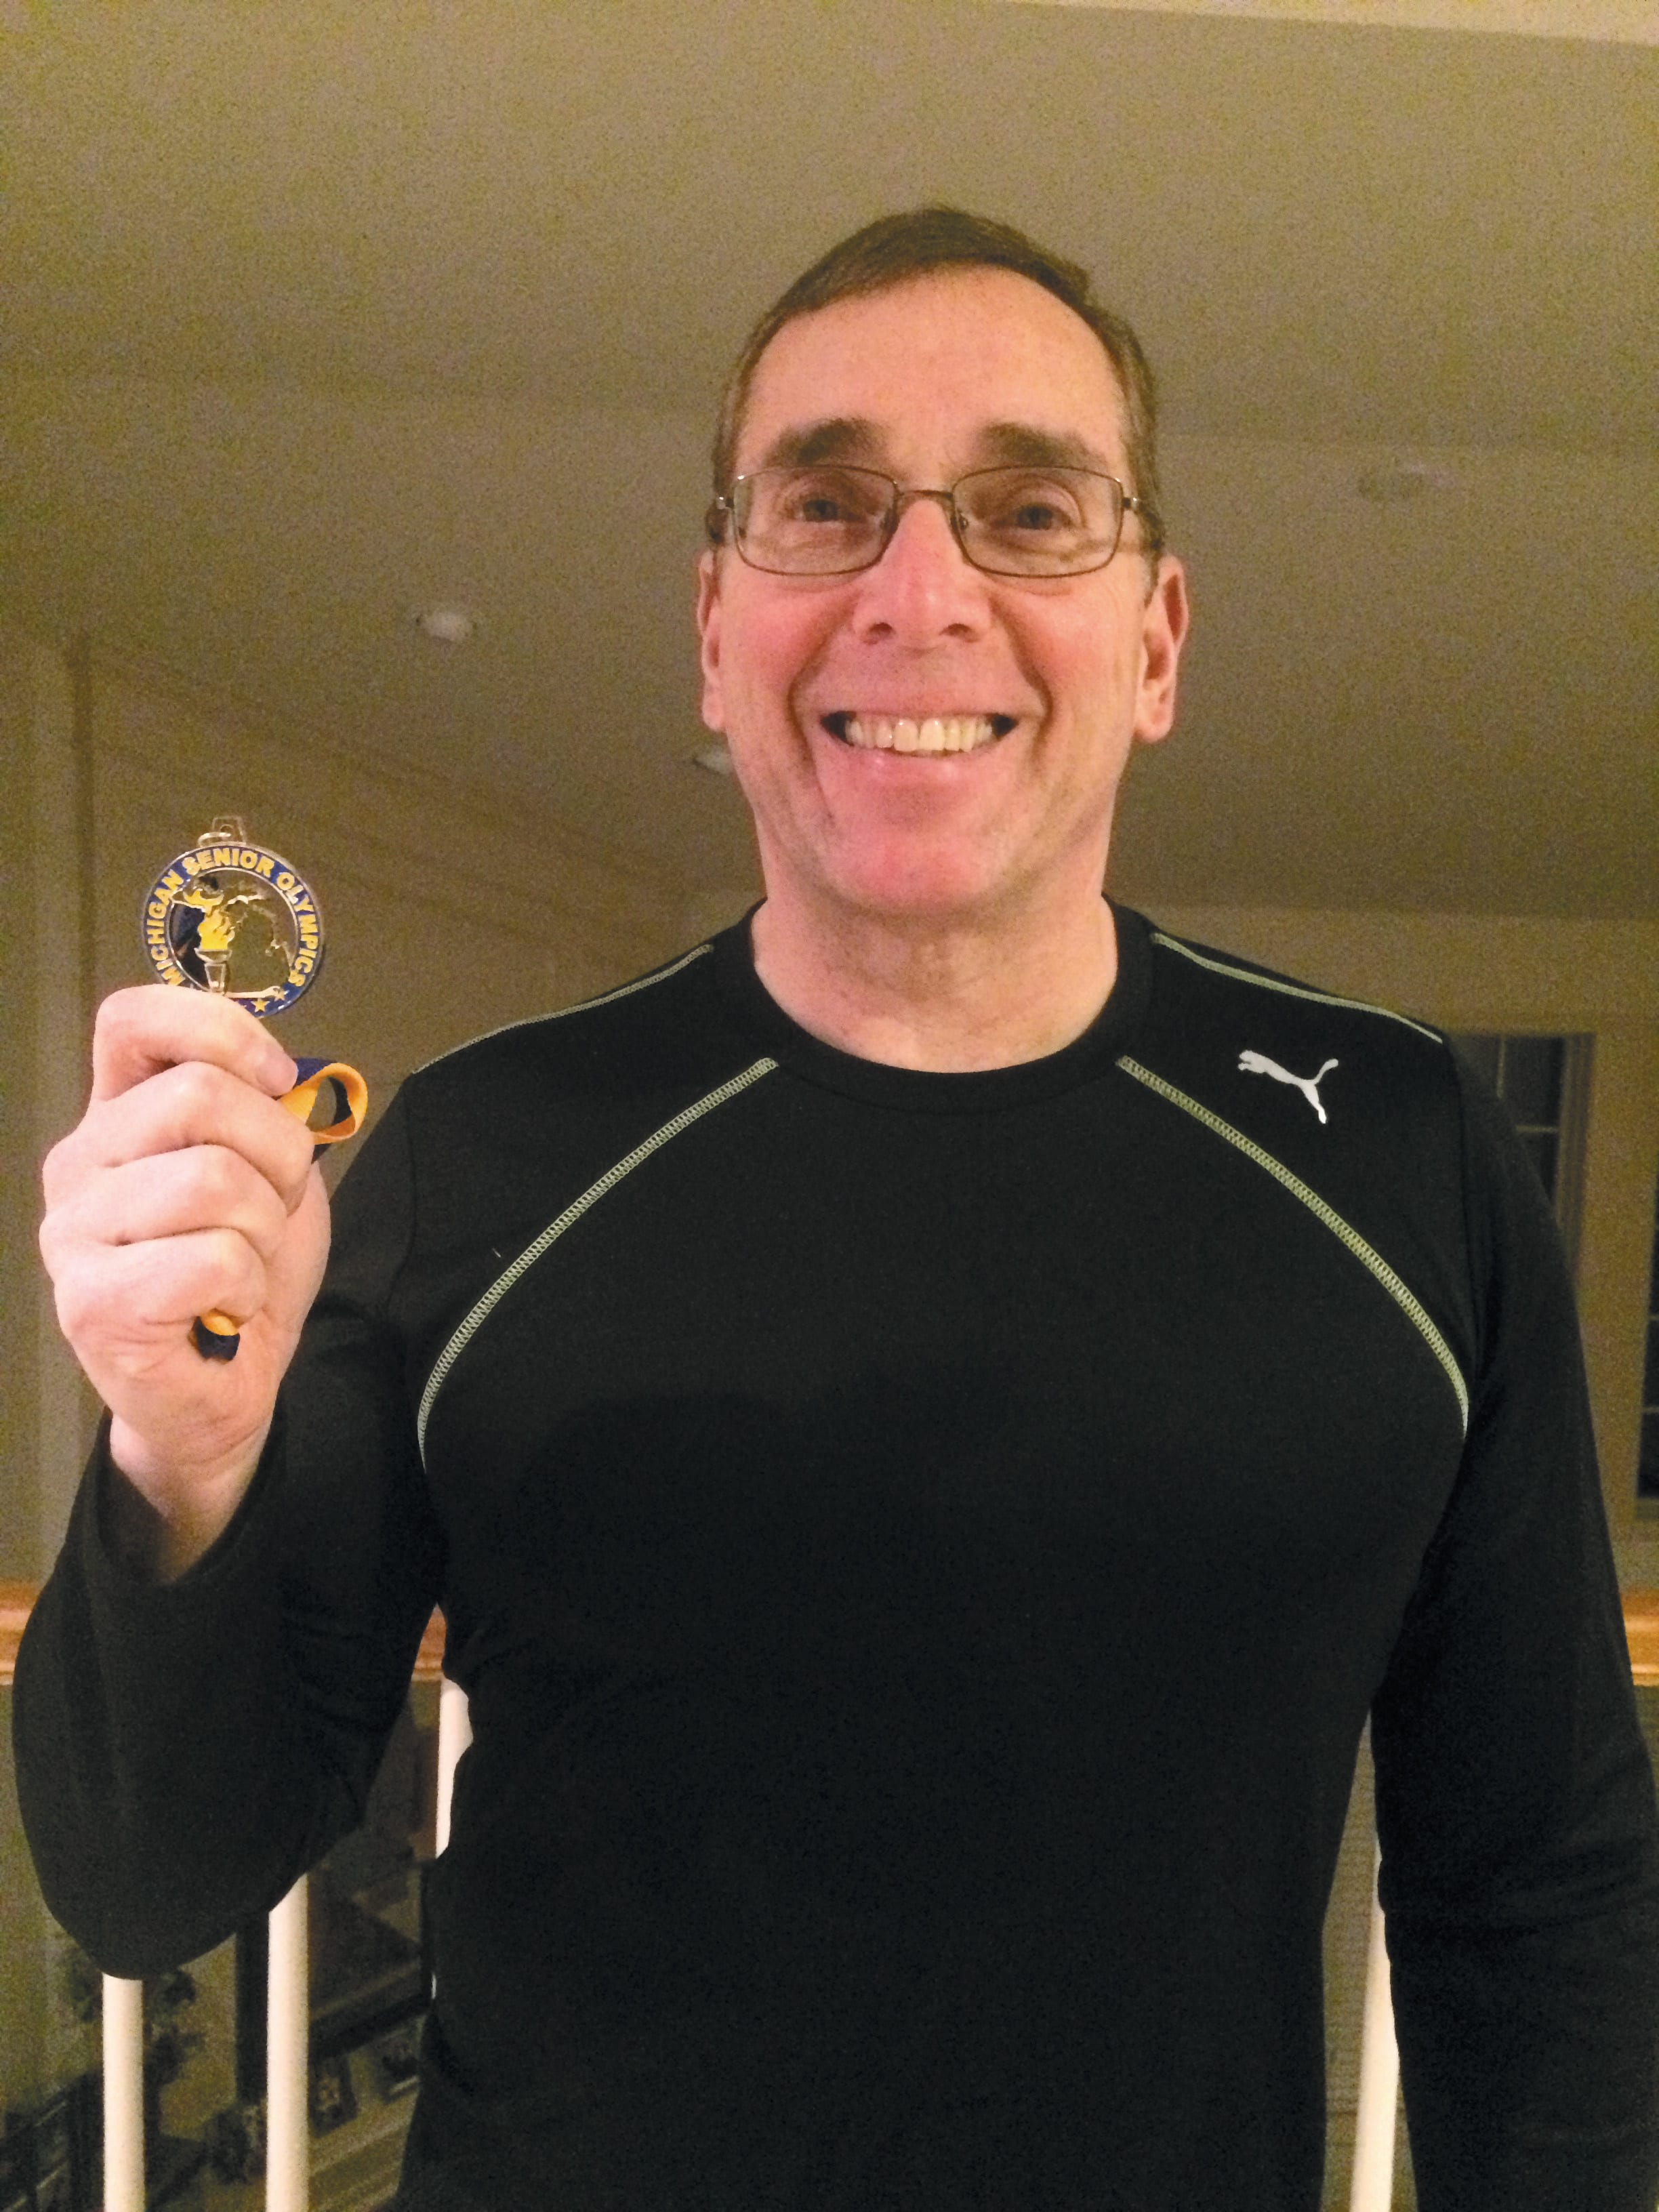 Jeff Ellis shows off his latest Michigan Senior Olympics gold medal.